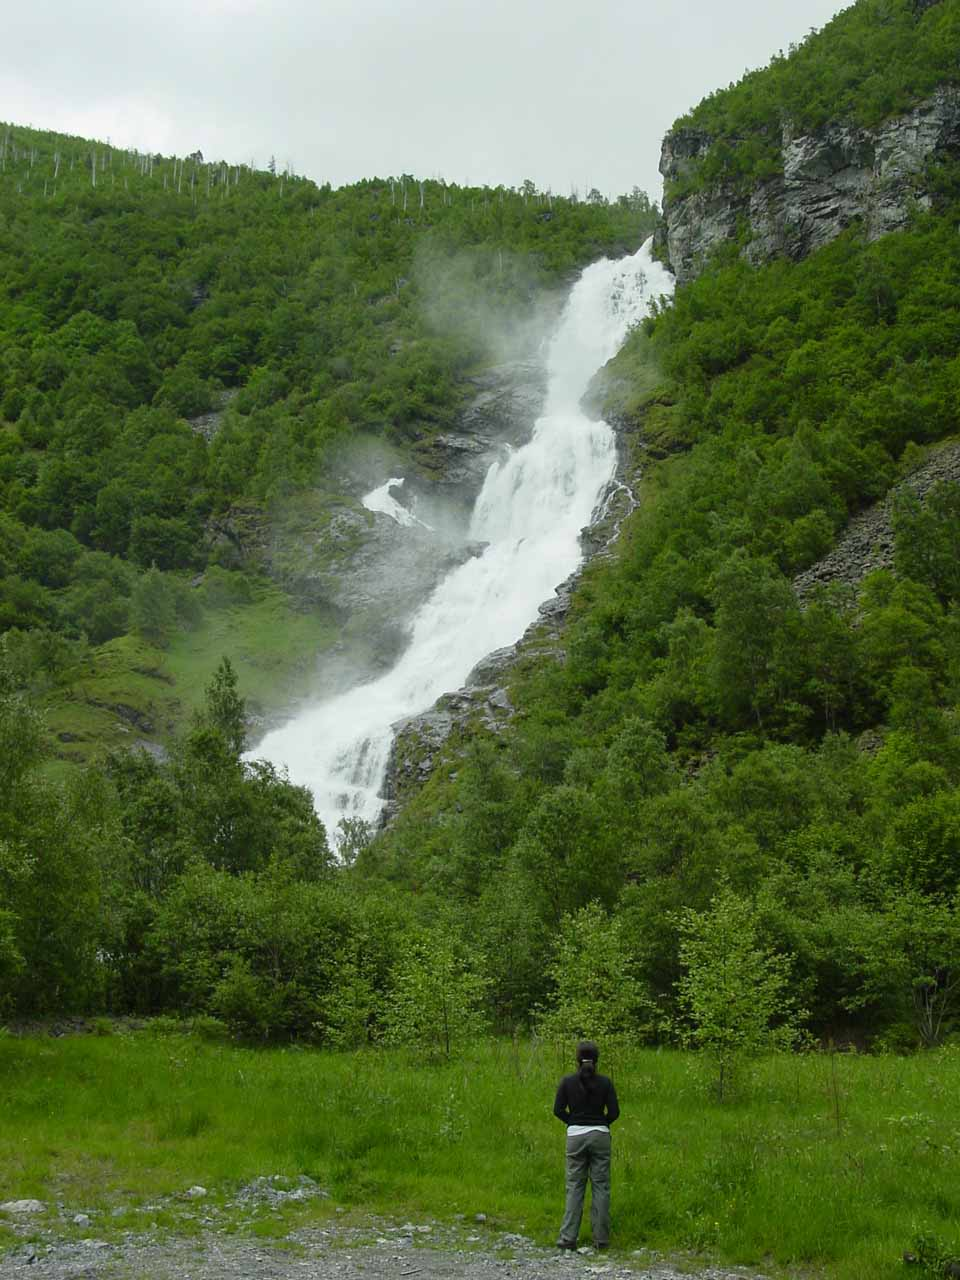 Hjellefossen was the first major waterfall of Utladalen that we saw though we didn't have to hike for this one